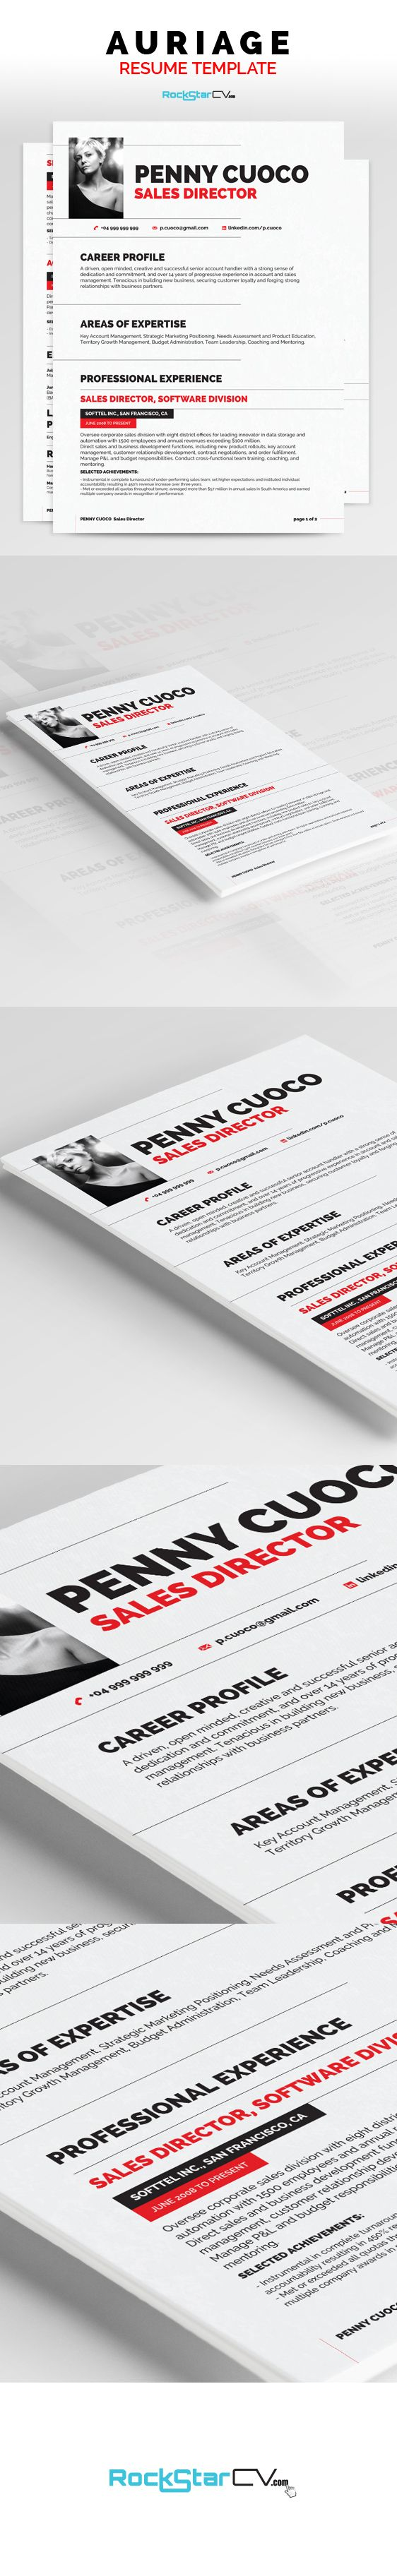 images about cv ideas cover letter auriage resume template resume template brings together the perfect balance of creativity and functionality